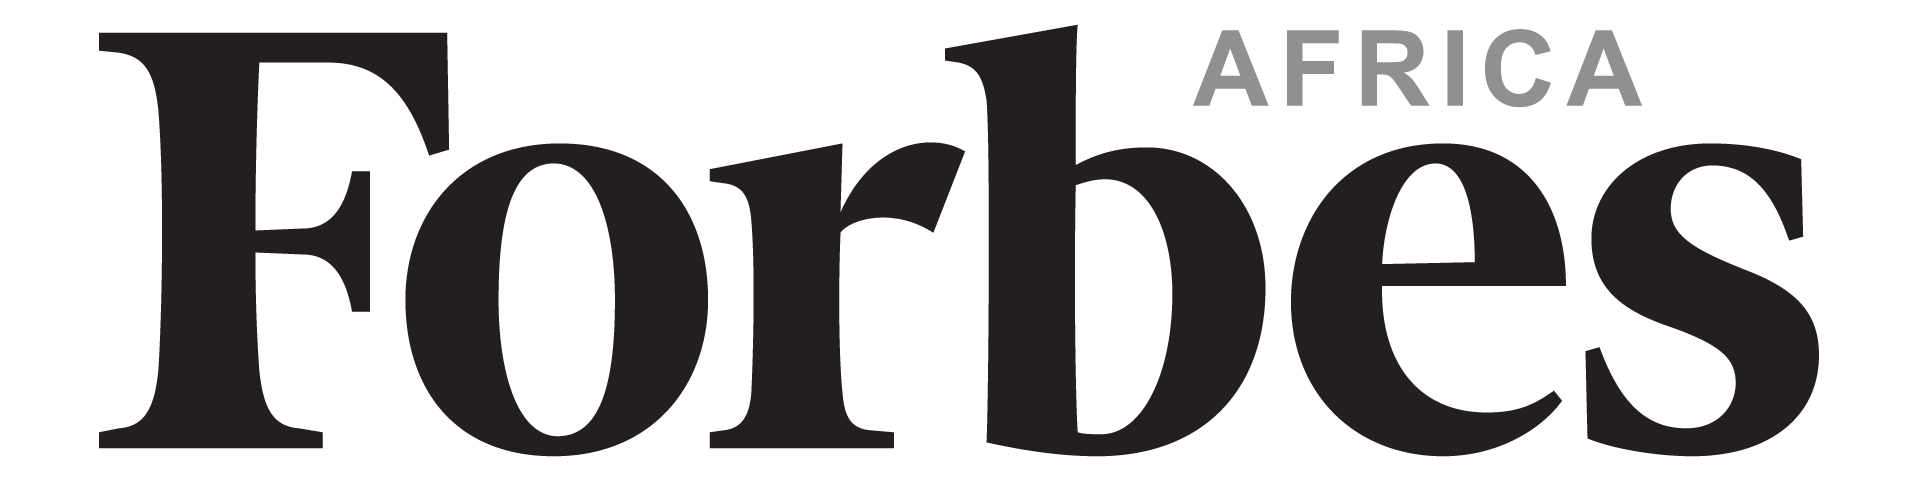 Forbes Africa  logo